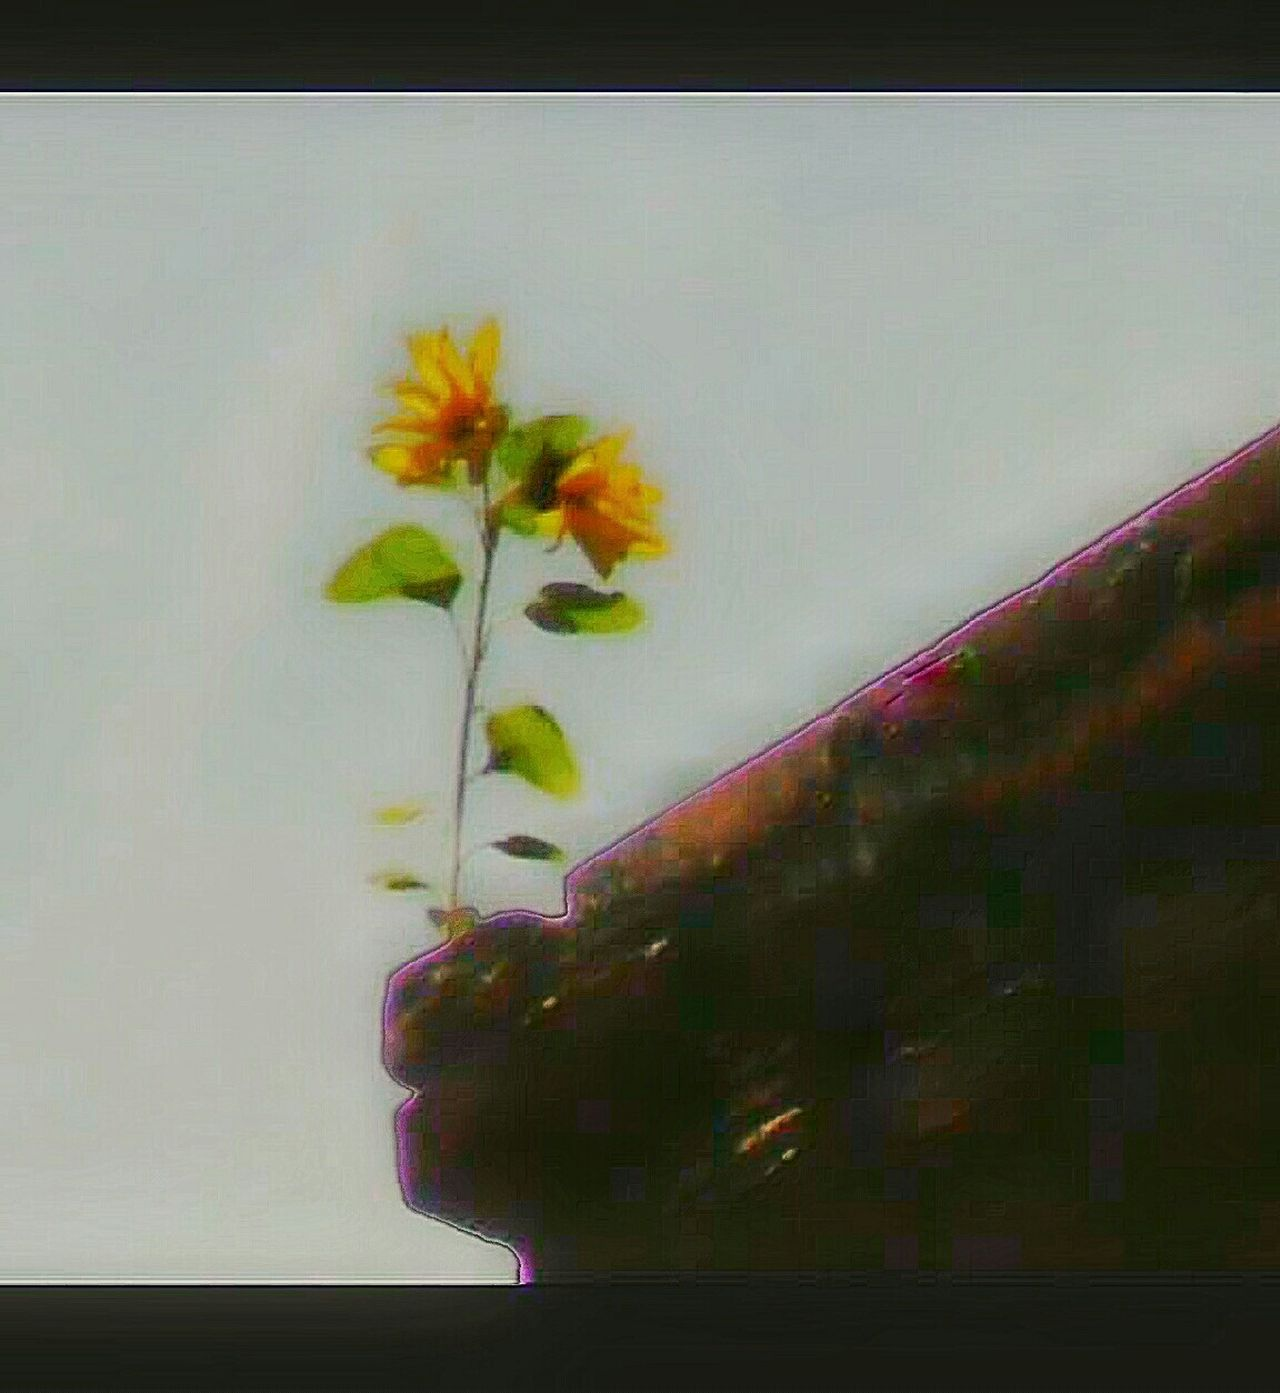 Urban Spring Fever Flower Growing From Chimney Can't Stop Mother Nature Wildflowers Springtime Flowers Of EyeEm Wildflowers Of Eyeem Outdoor Photography Nature Photography Building Building Structure 4 Stories Up Sun Flower Yellow Flowers